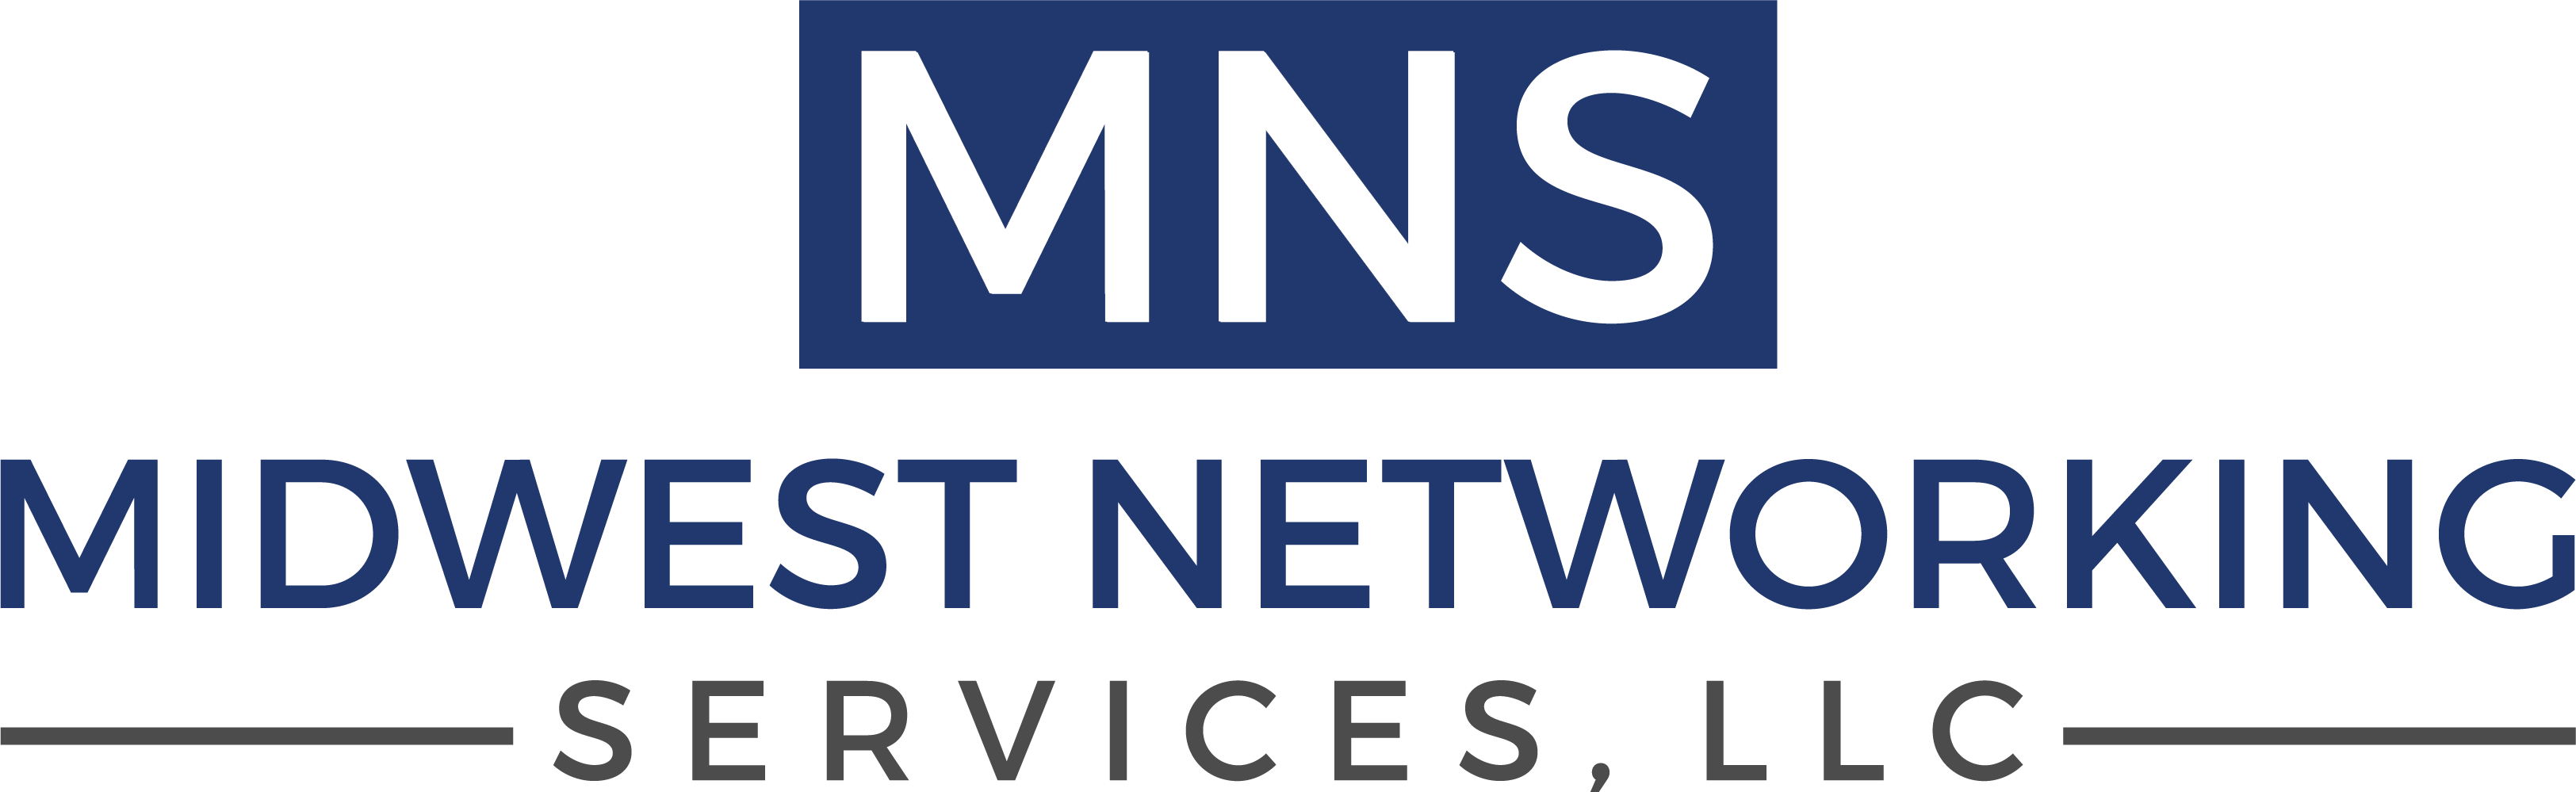 Midwest Networking Services, LLC